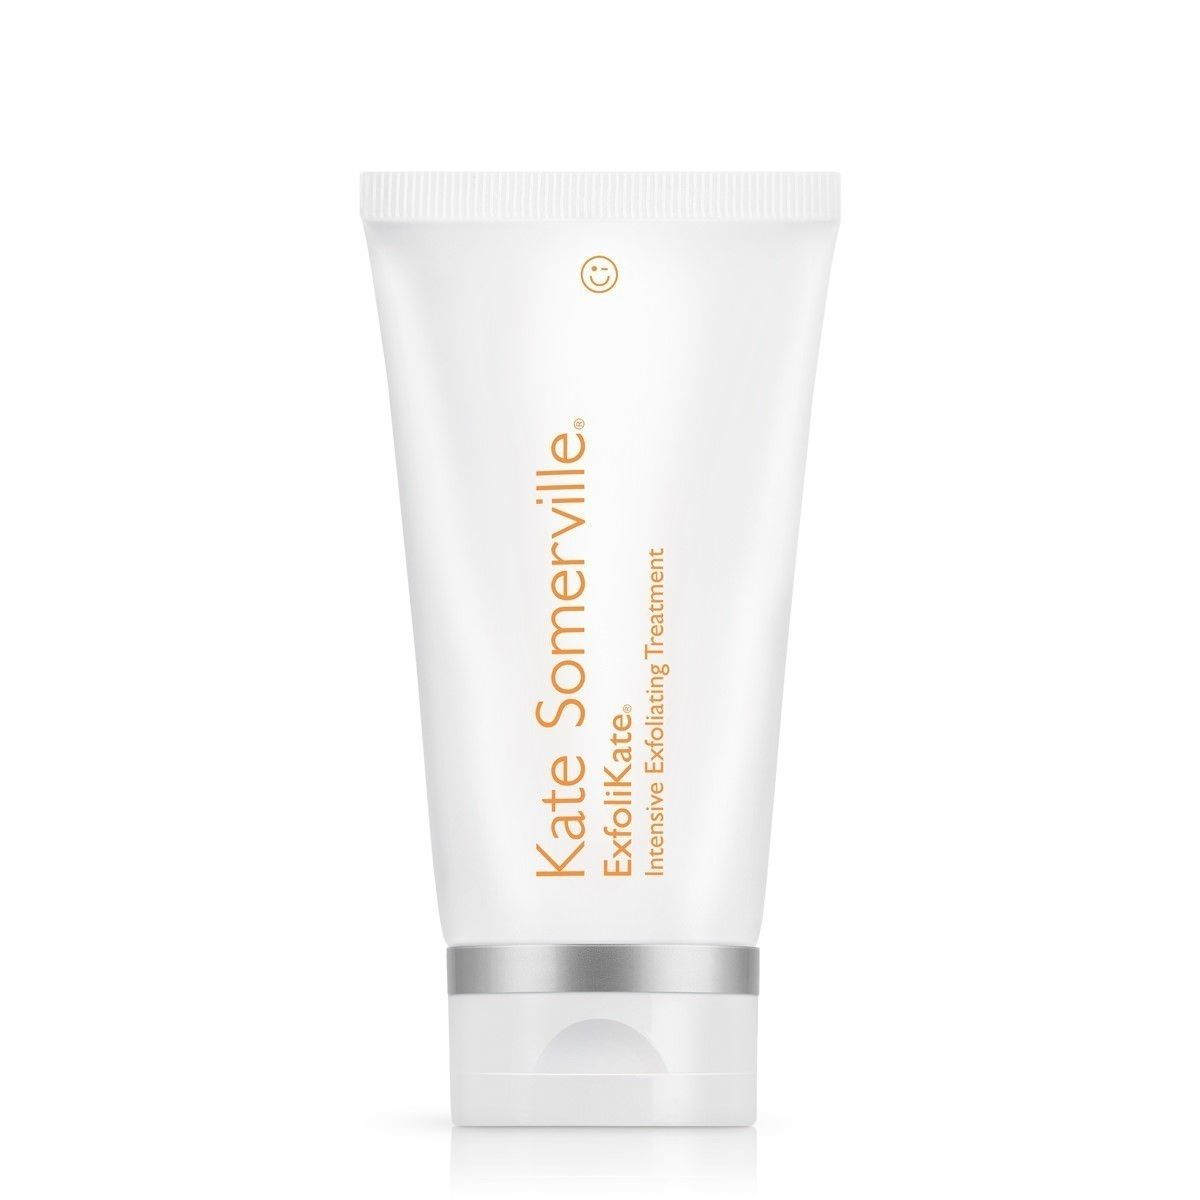 Kate Somerville ExfoliKate {$24} - What a clever name! I use the ExfoliKate exfoliator 1-3 times a week since it is so strong and leaves my skin a bit red, but I need to use it a little more since I live in the city.